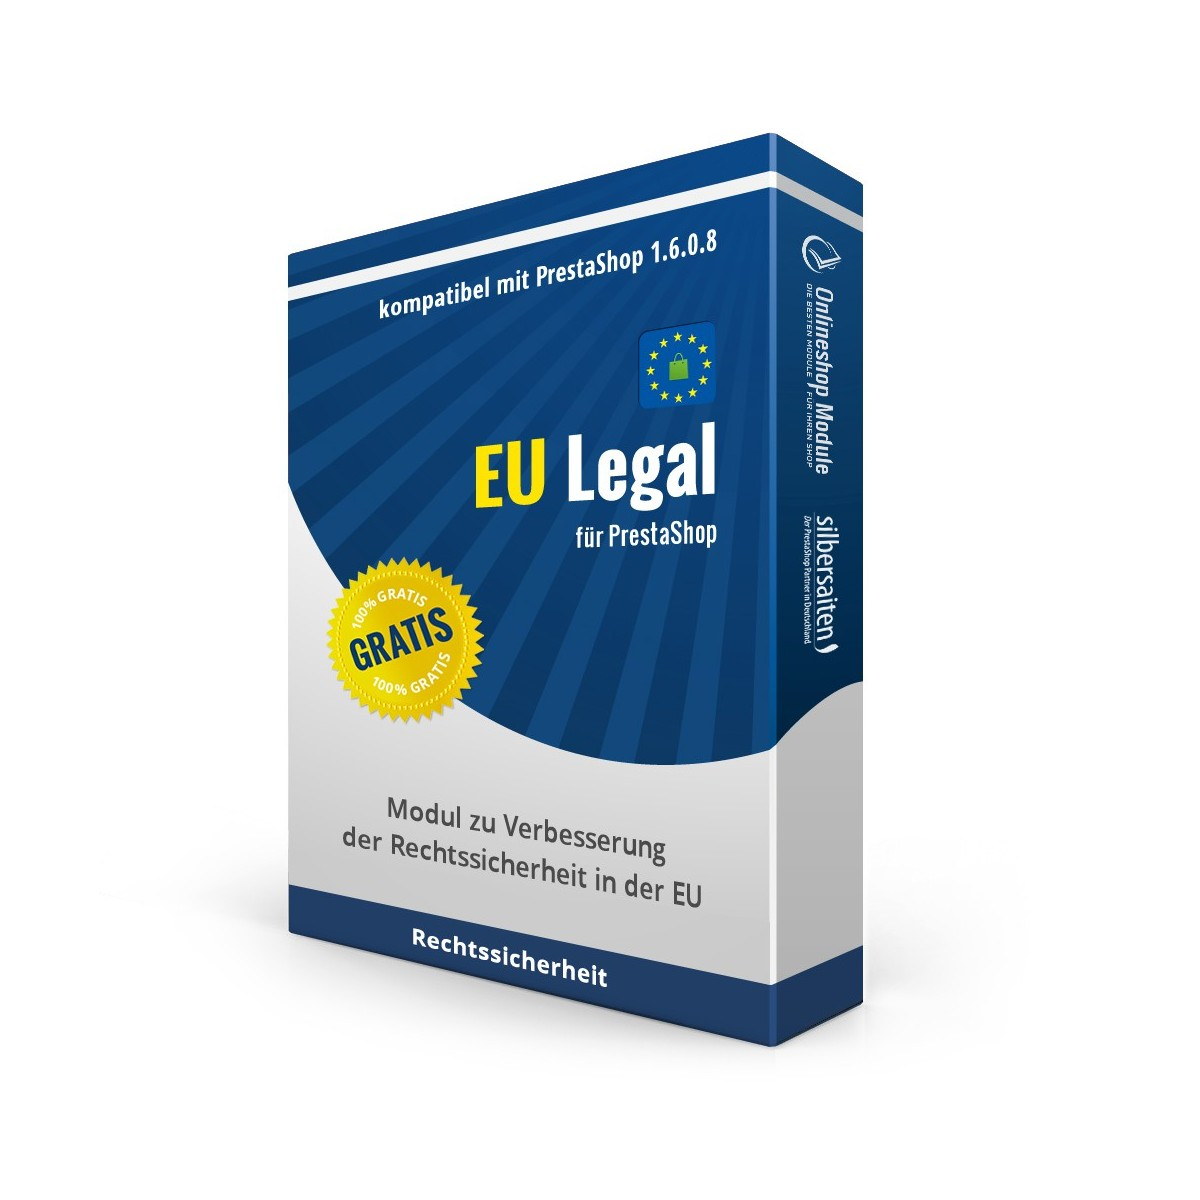 EU-Legal für PrestaShop 1.6.0.8